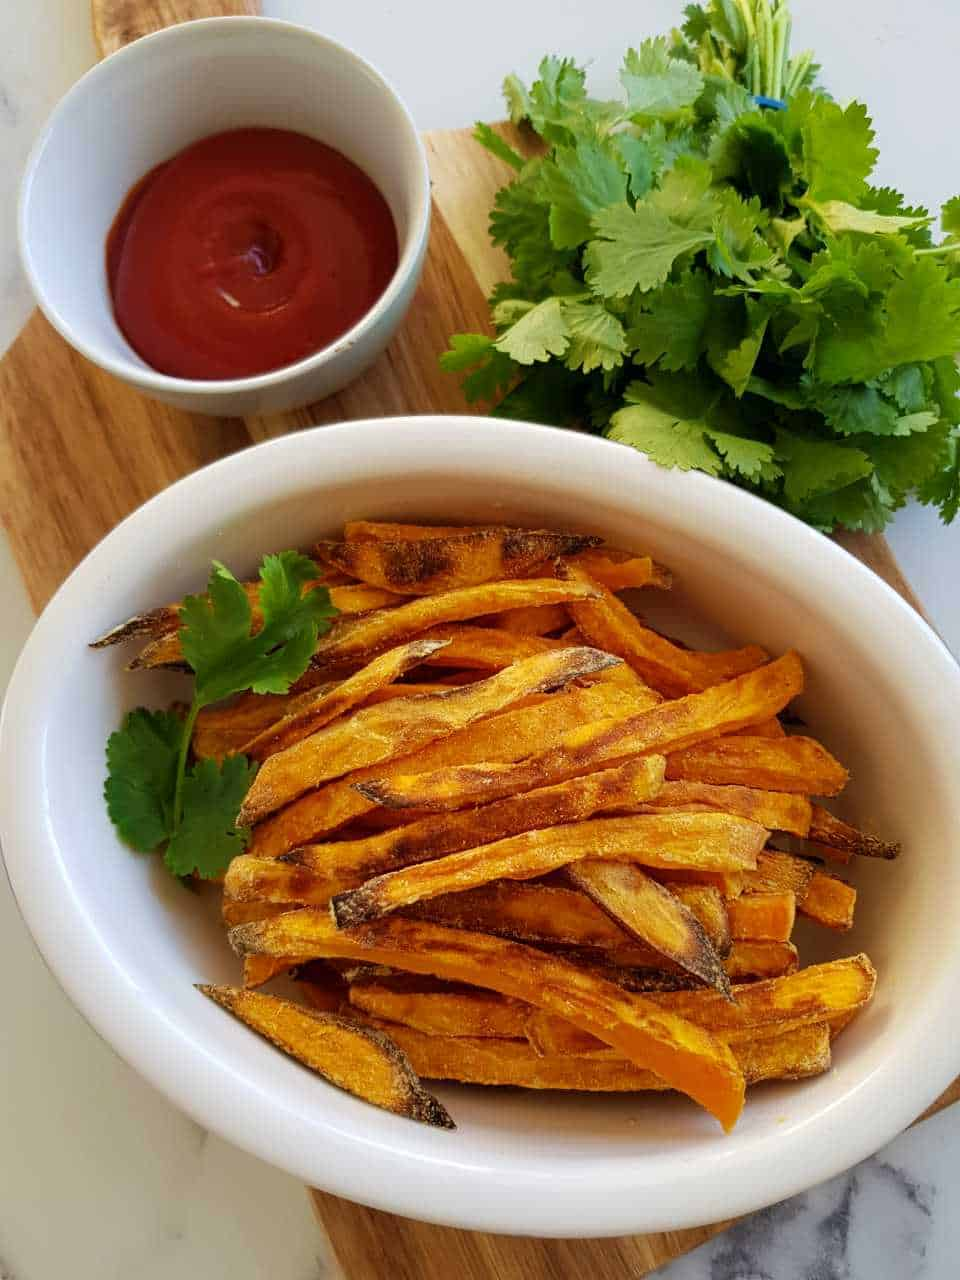 sweet potato fries on a wooden board with tomato sauce and fresh herbs.